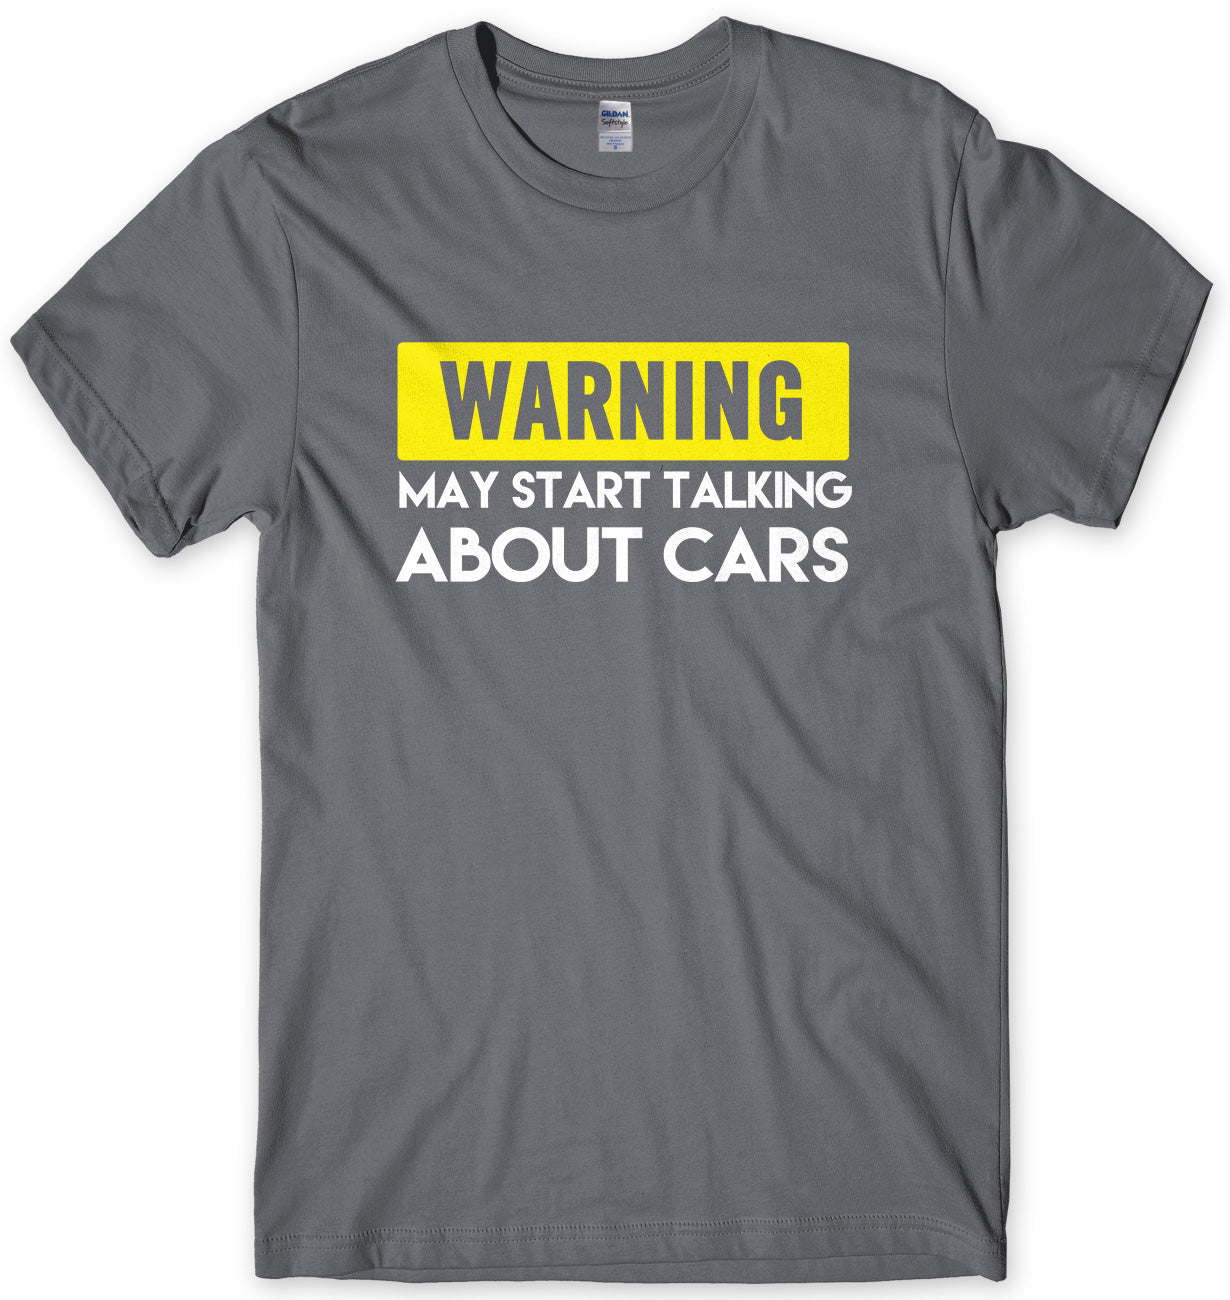 WARNING MAY START TALKING ABOUT CARS MENS FUNNY SLOGAN UNISEX T-SHIRT